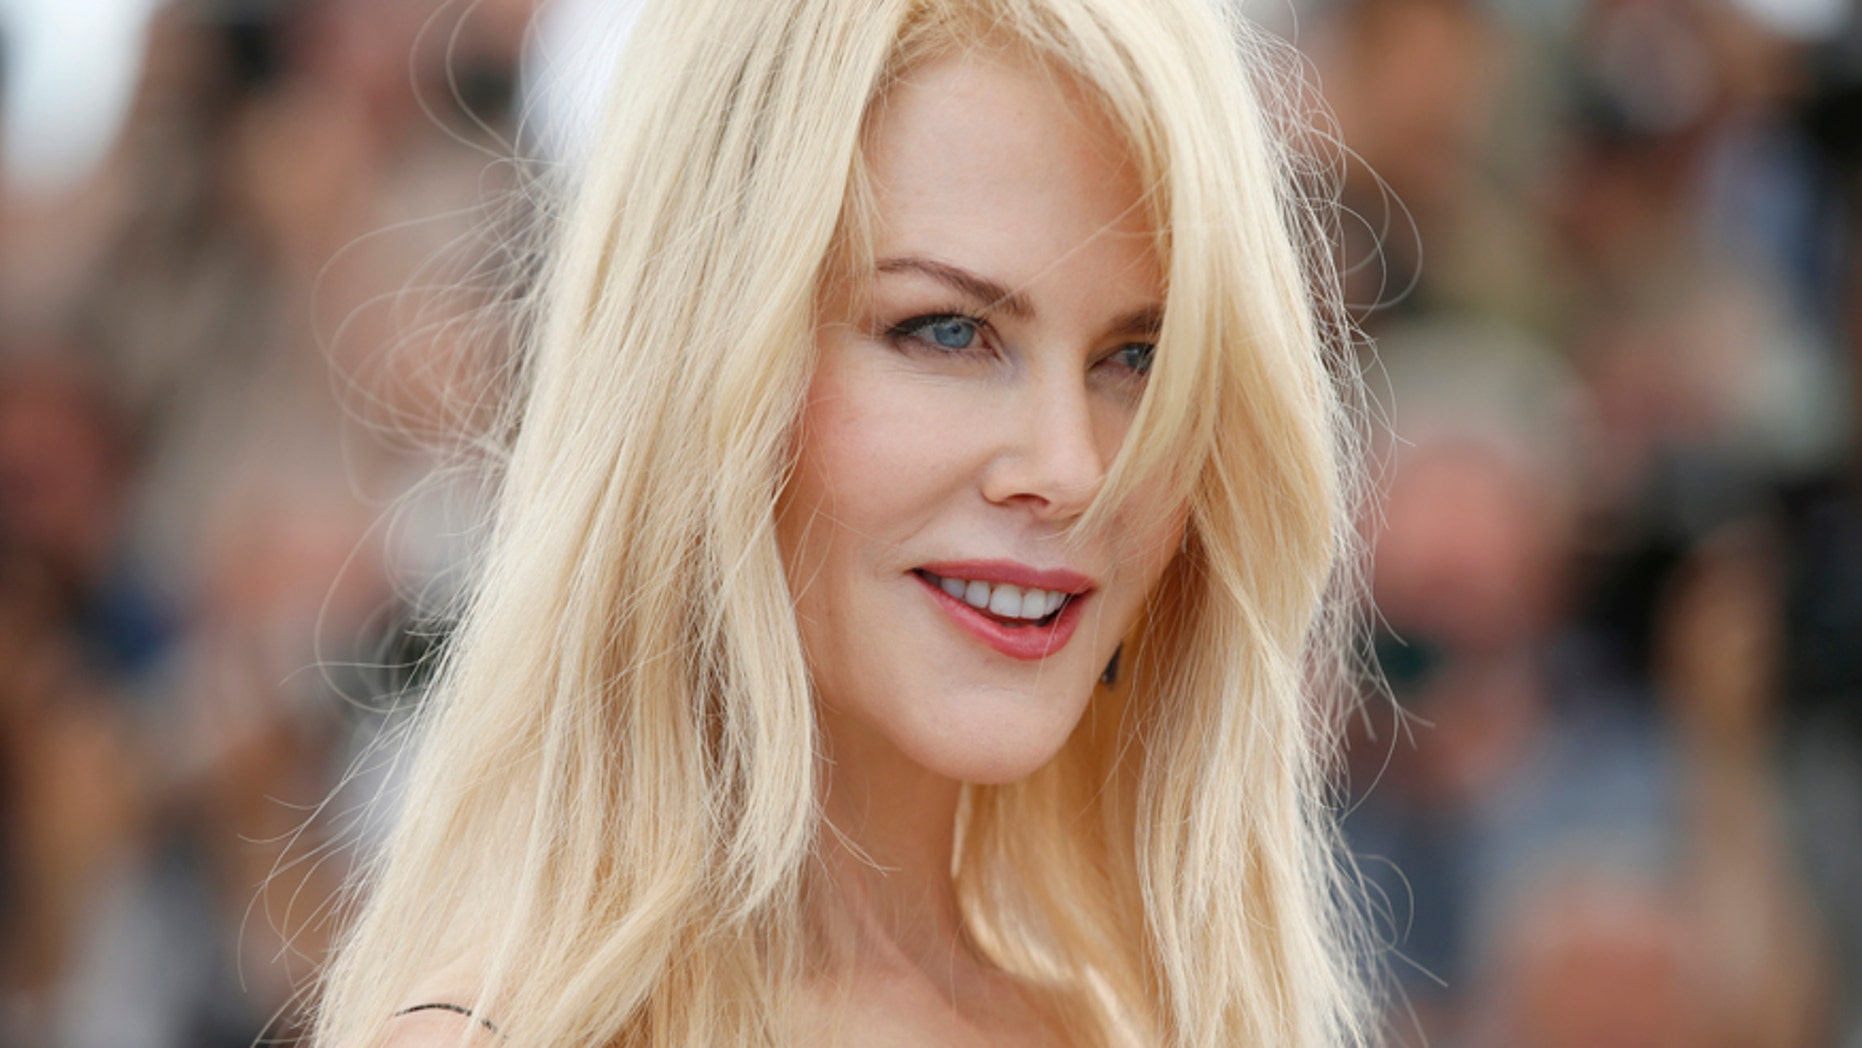 Actress Nicole Kidman had an active shooter scare on the set of a movie.